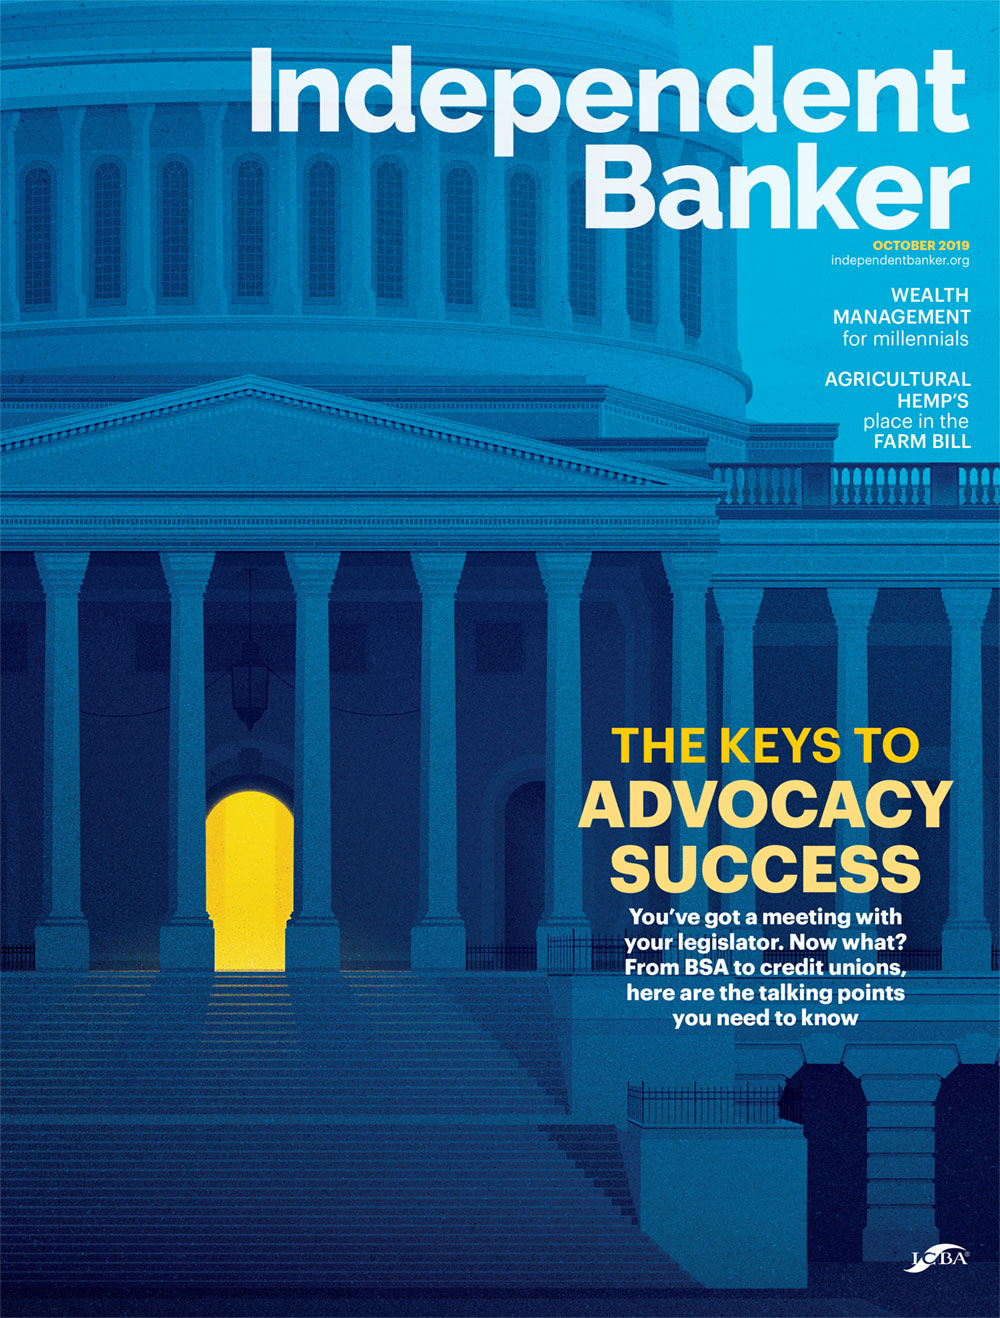 September IB Magazine Cover on Payments